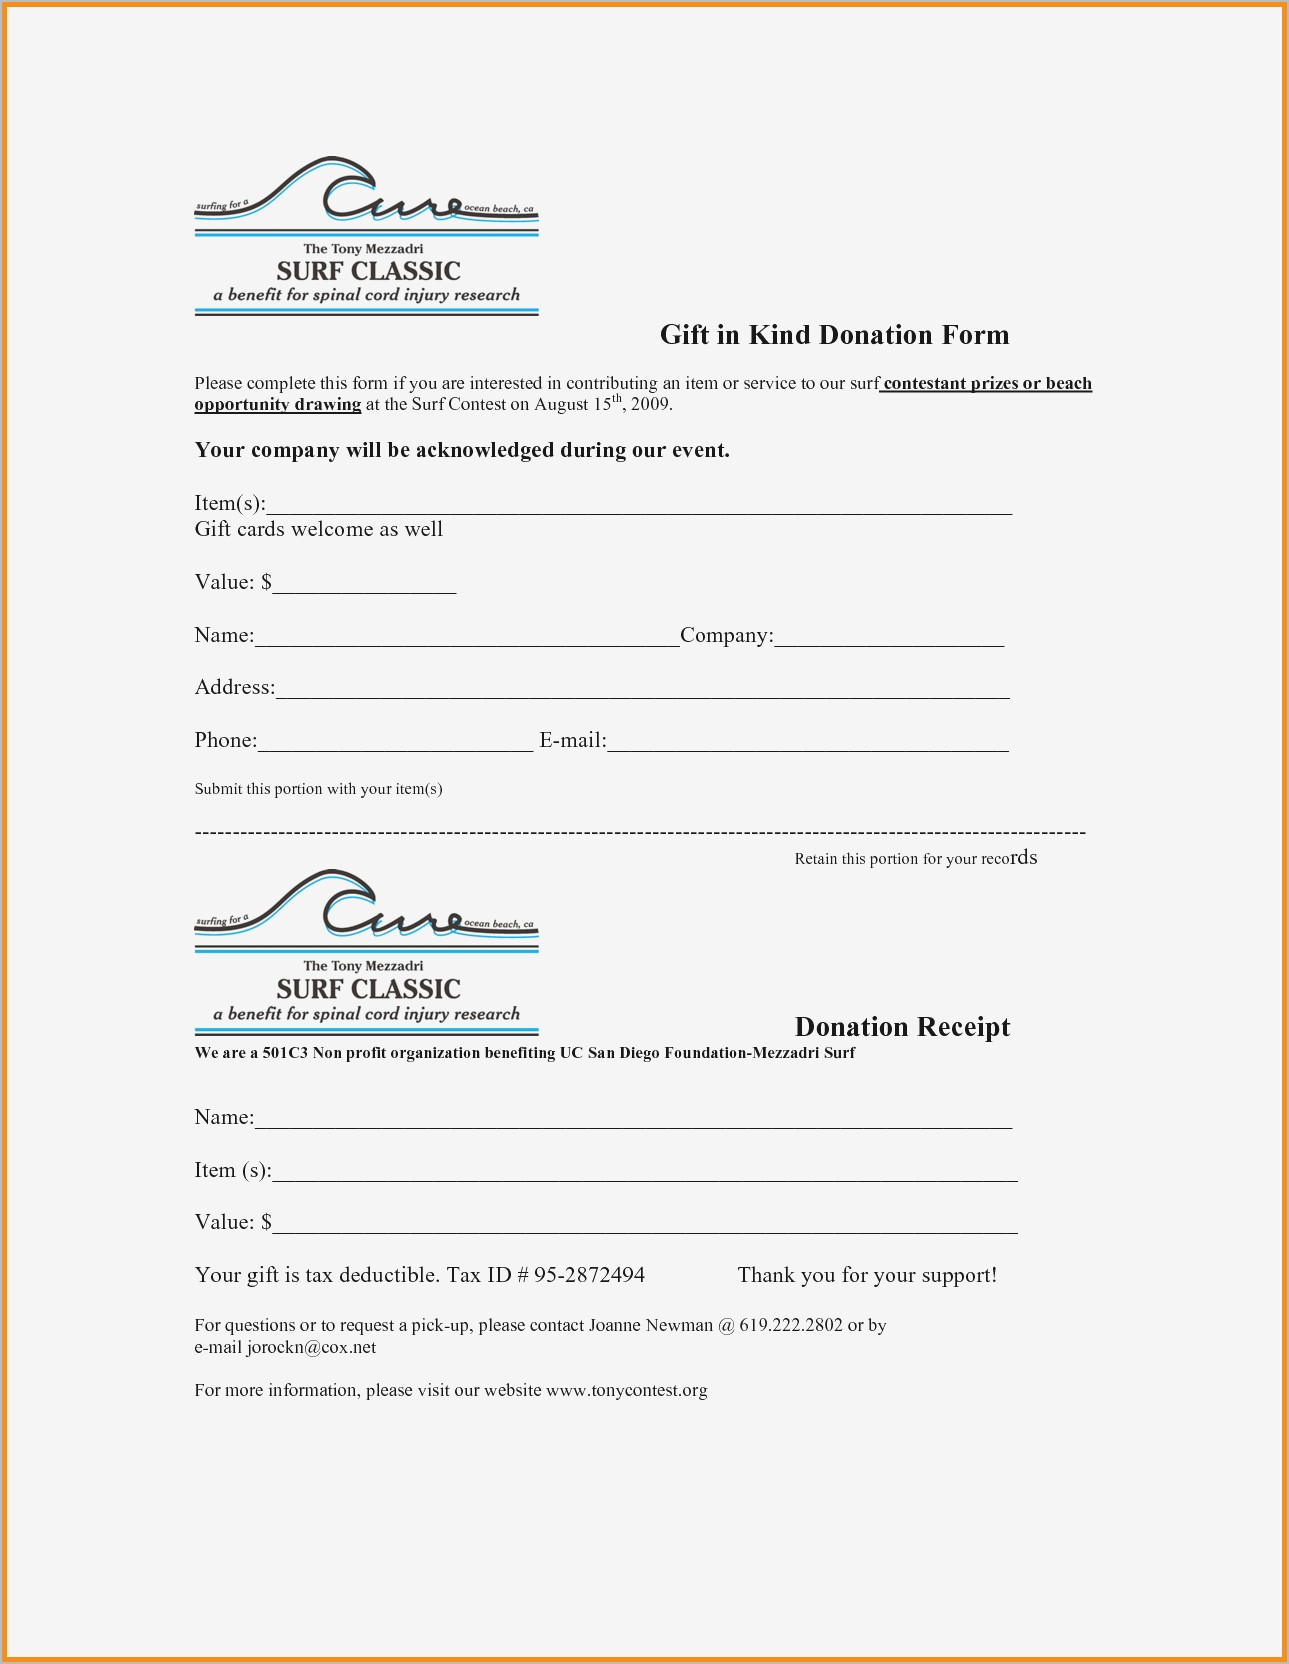 Donation Receipt Letter Template Word - Donation Receipt Letter Samples